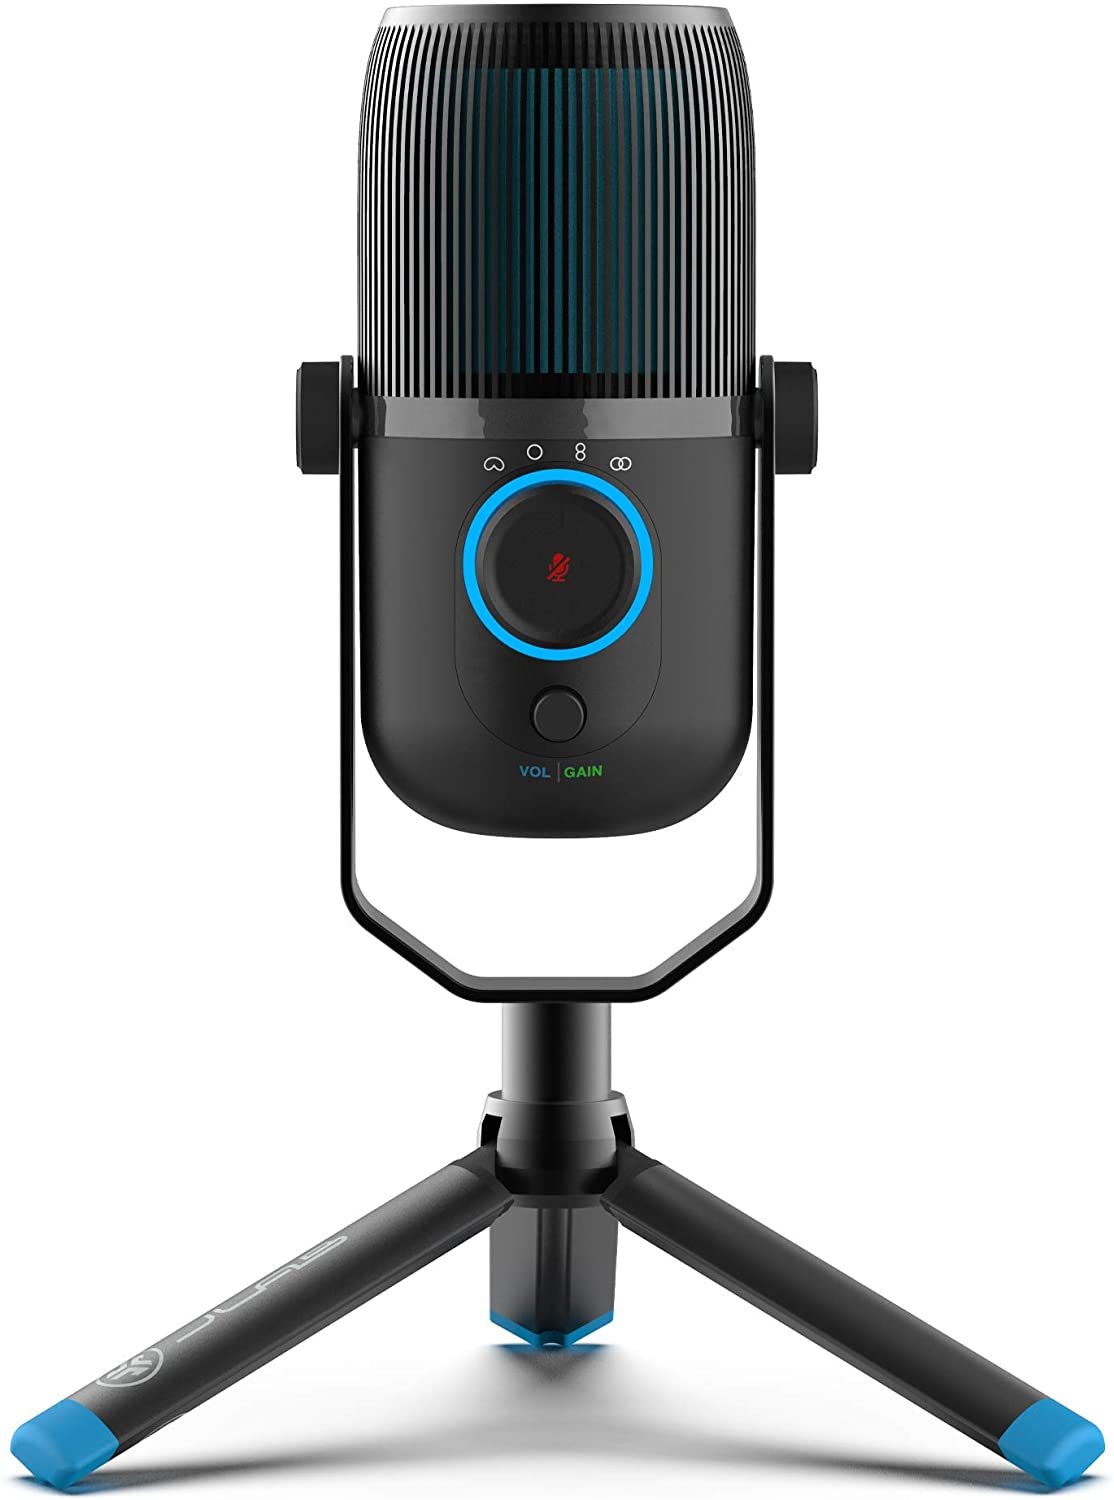 JLab Talk USB Microphone Cardioid Ranking TOP18 Output USB-C Omnidirectio Recommended